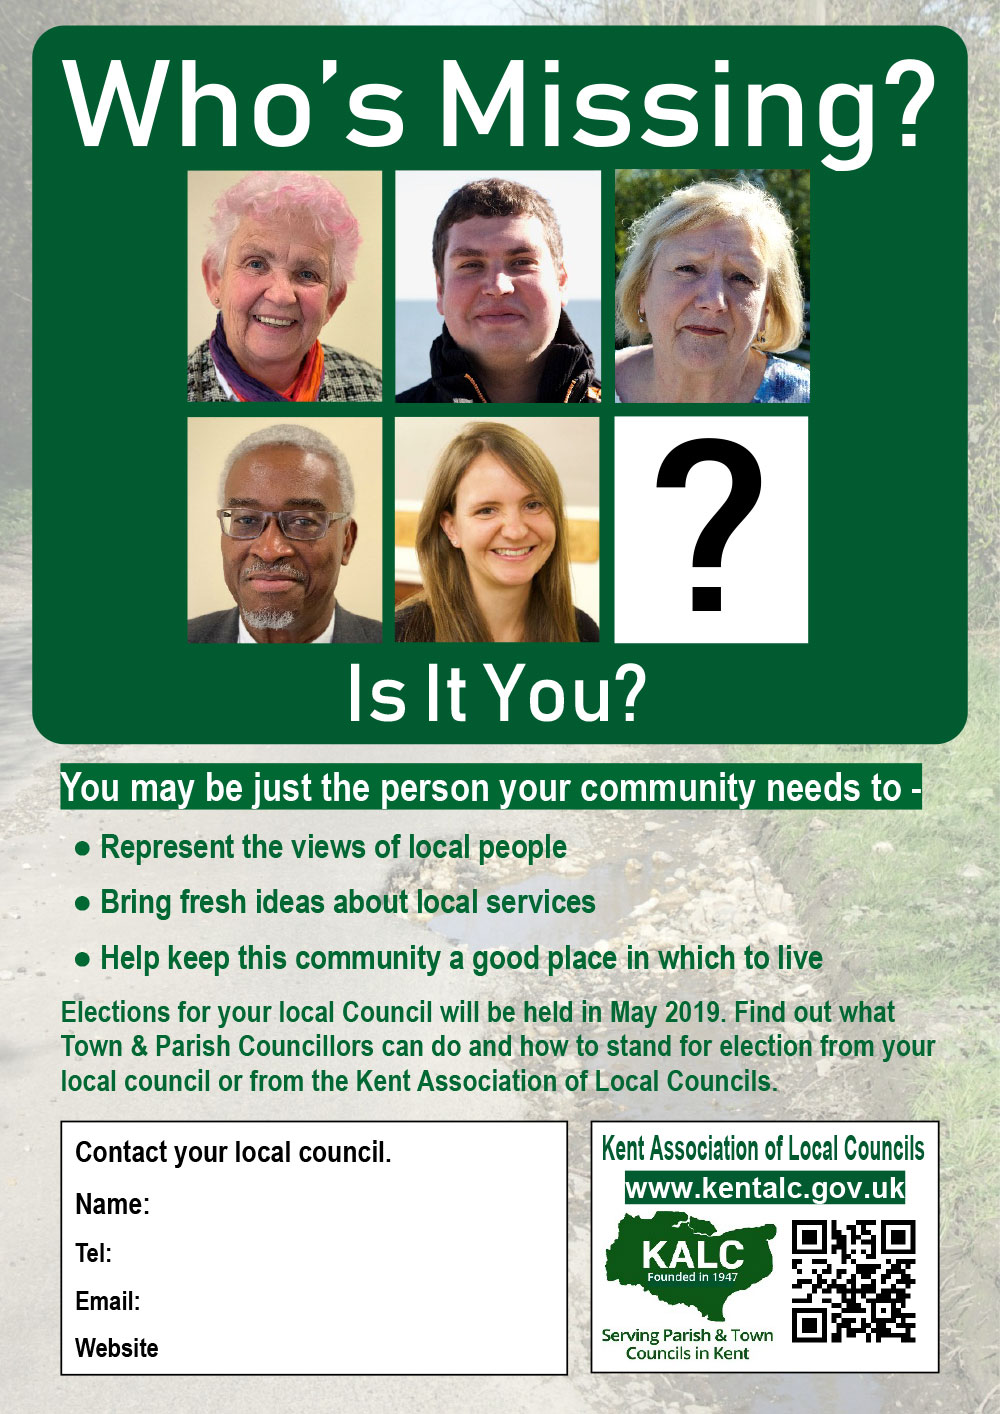 promotional leaflet produced by KALC inviting people to step forward as a councillor